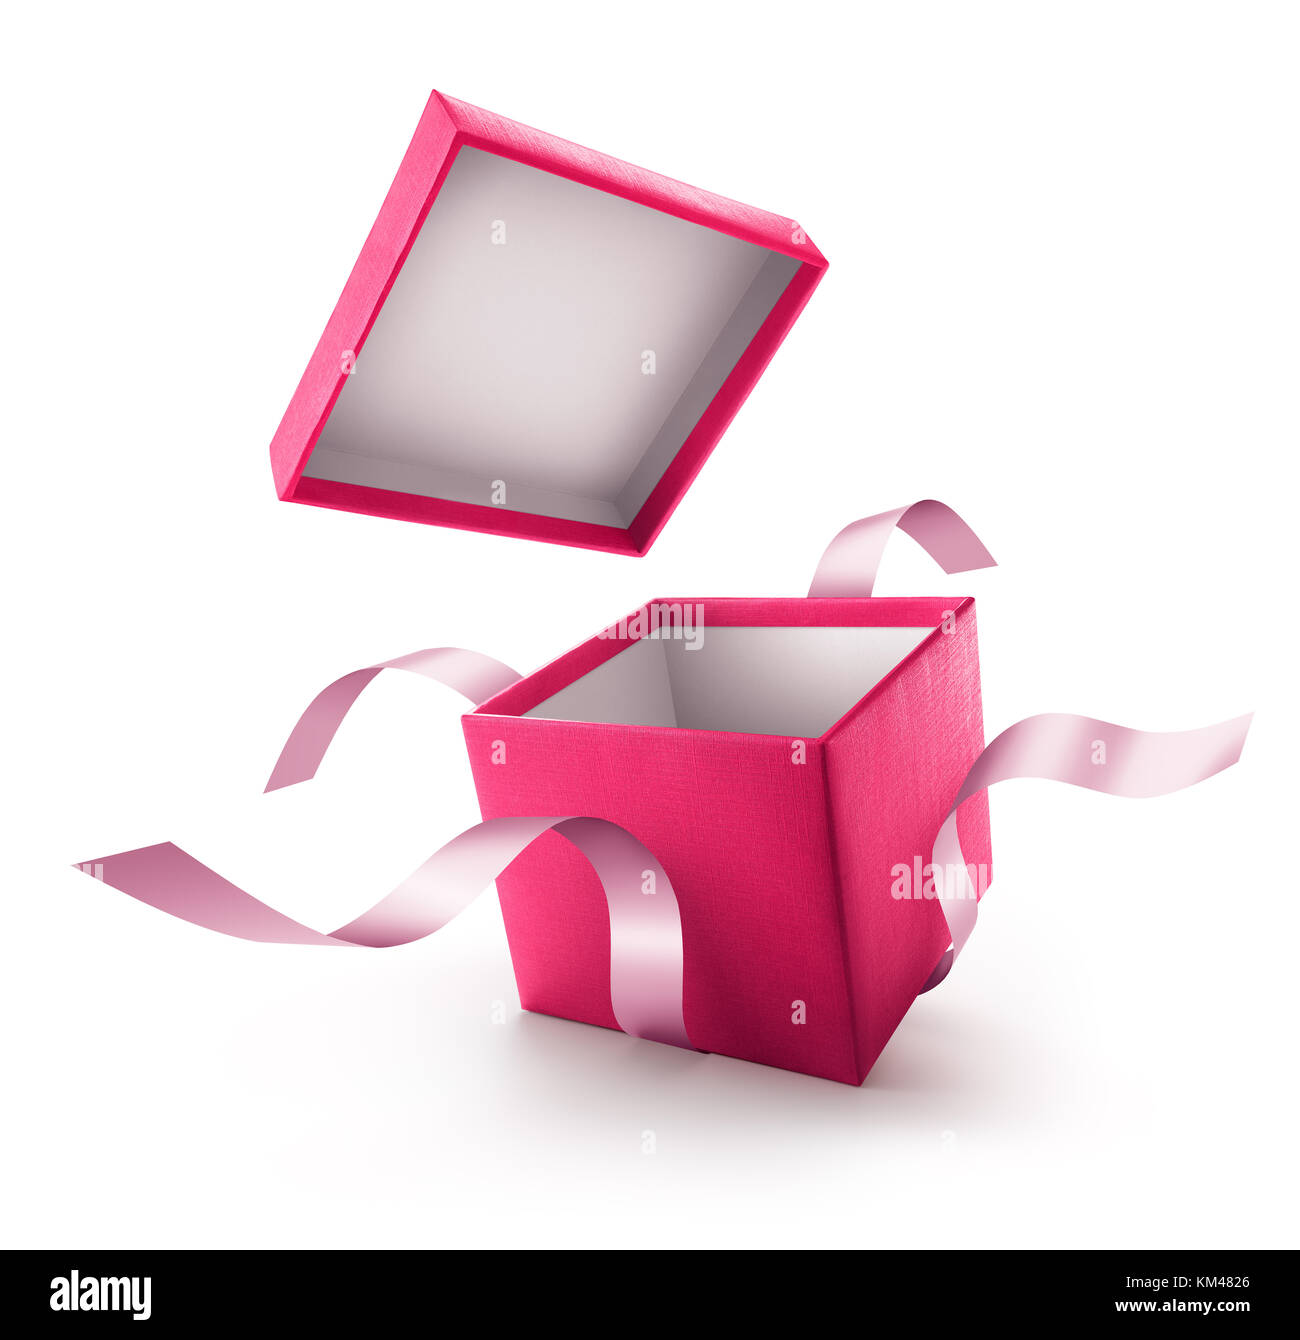 Pink open gift box with ribbon isolated on white background - Stock Image